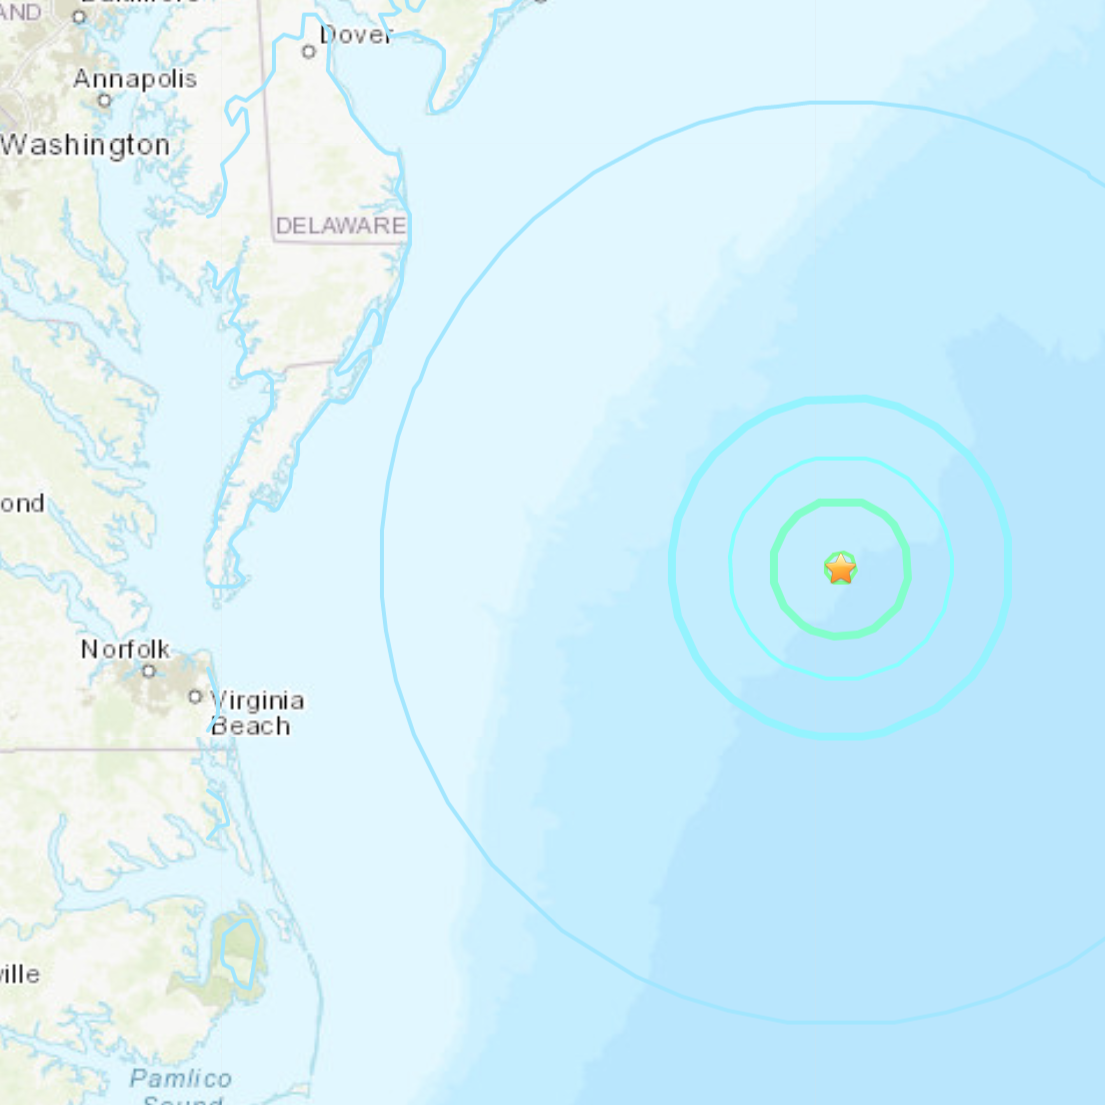 Ocean City earthquake: Tsunami risk described as very low after quake